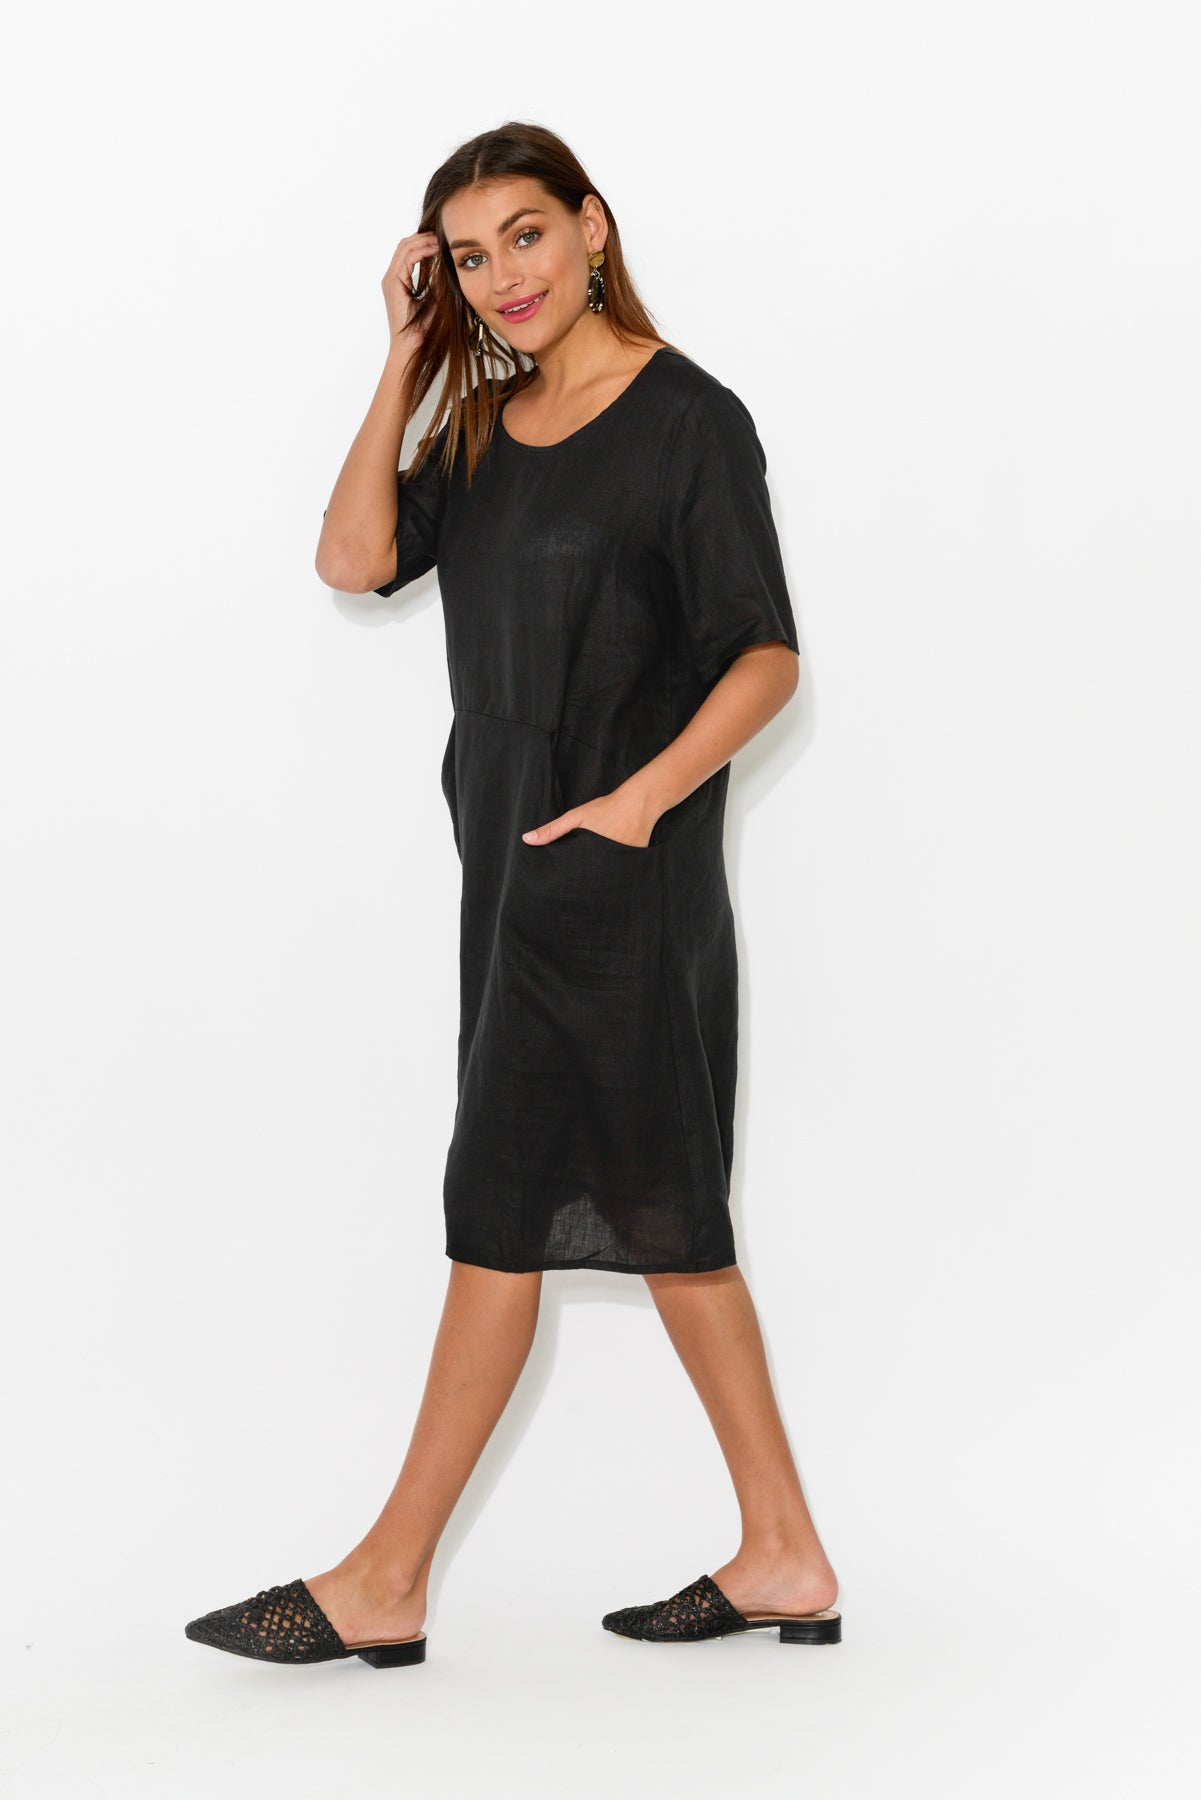 Dora Black Linen Pocket Dress - Blue Bungalow